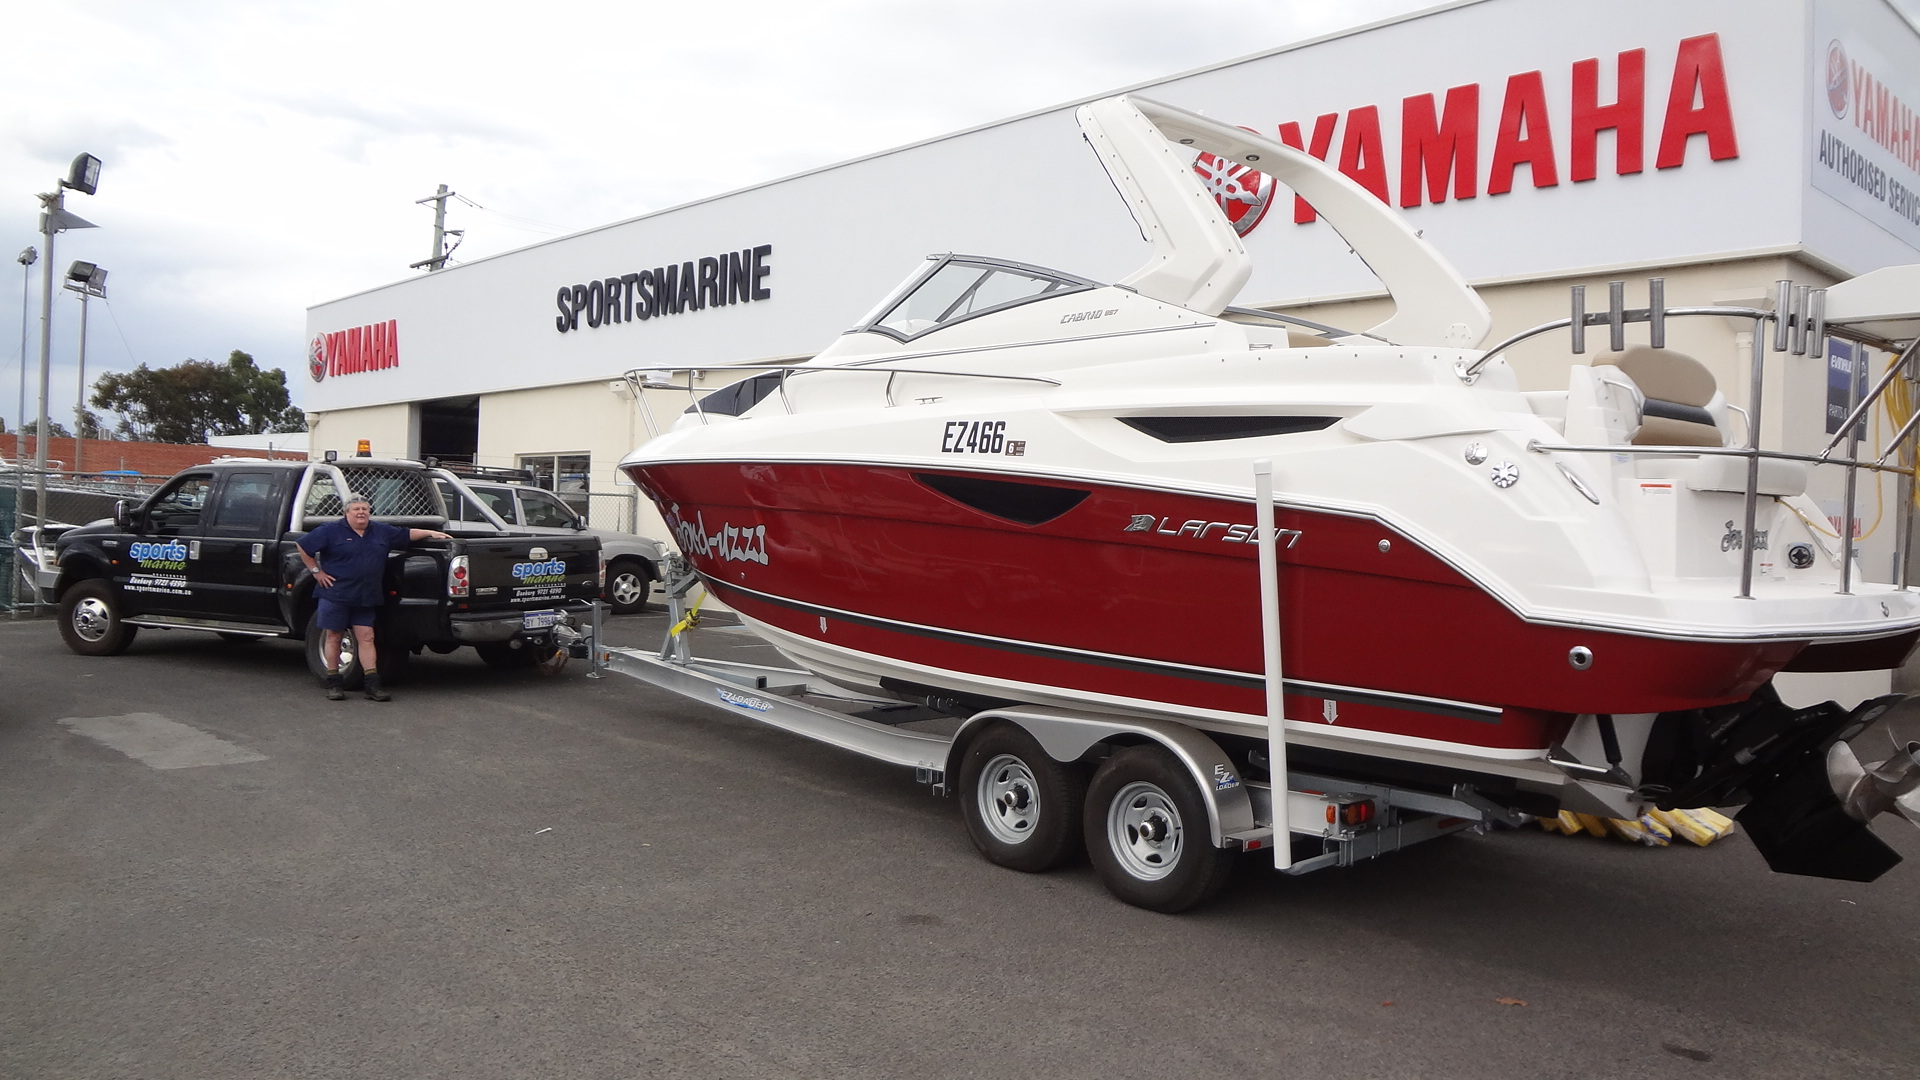 Yamaha Outboard Covers Perth